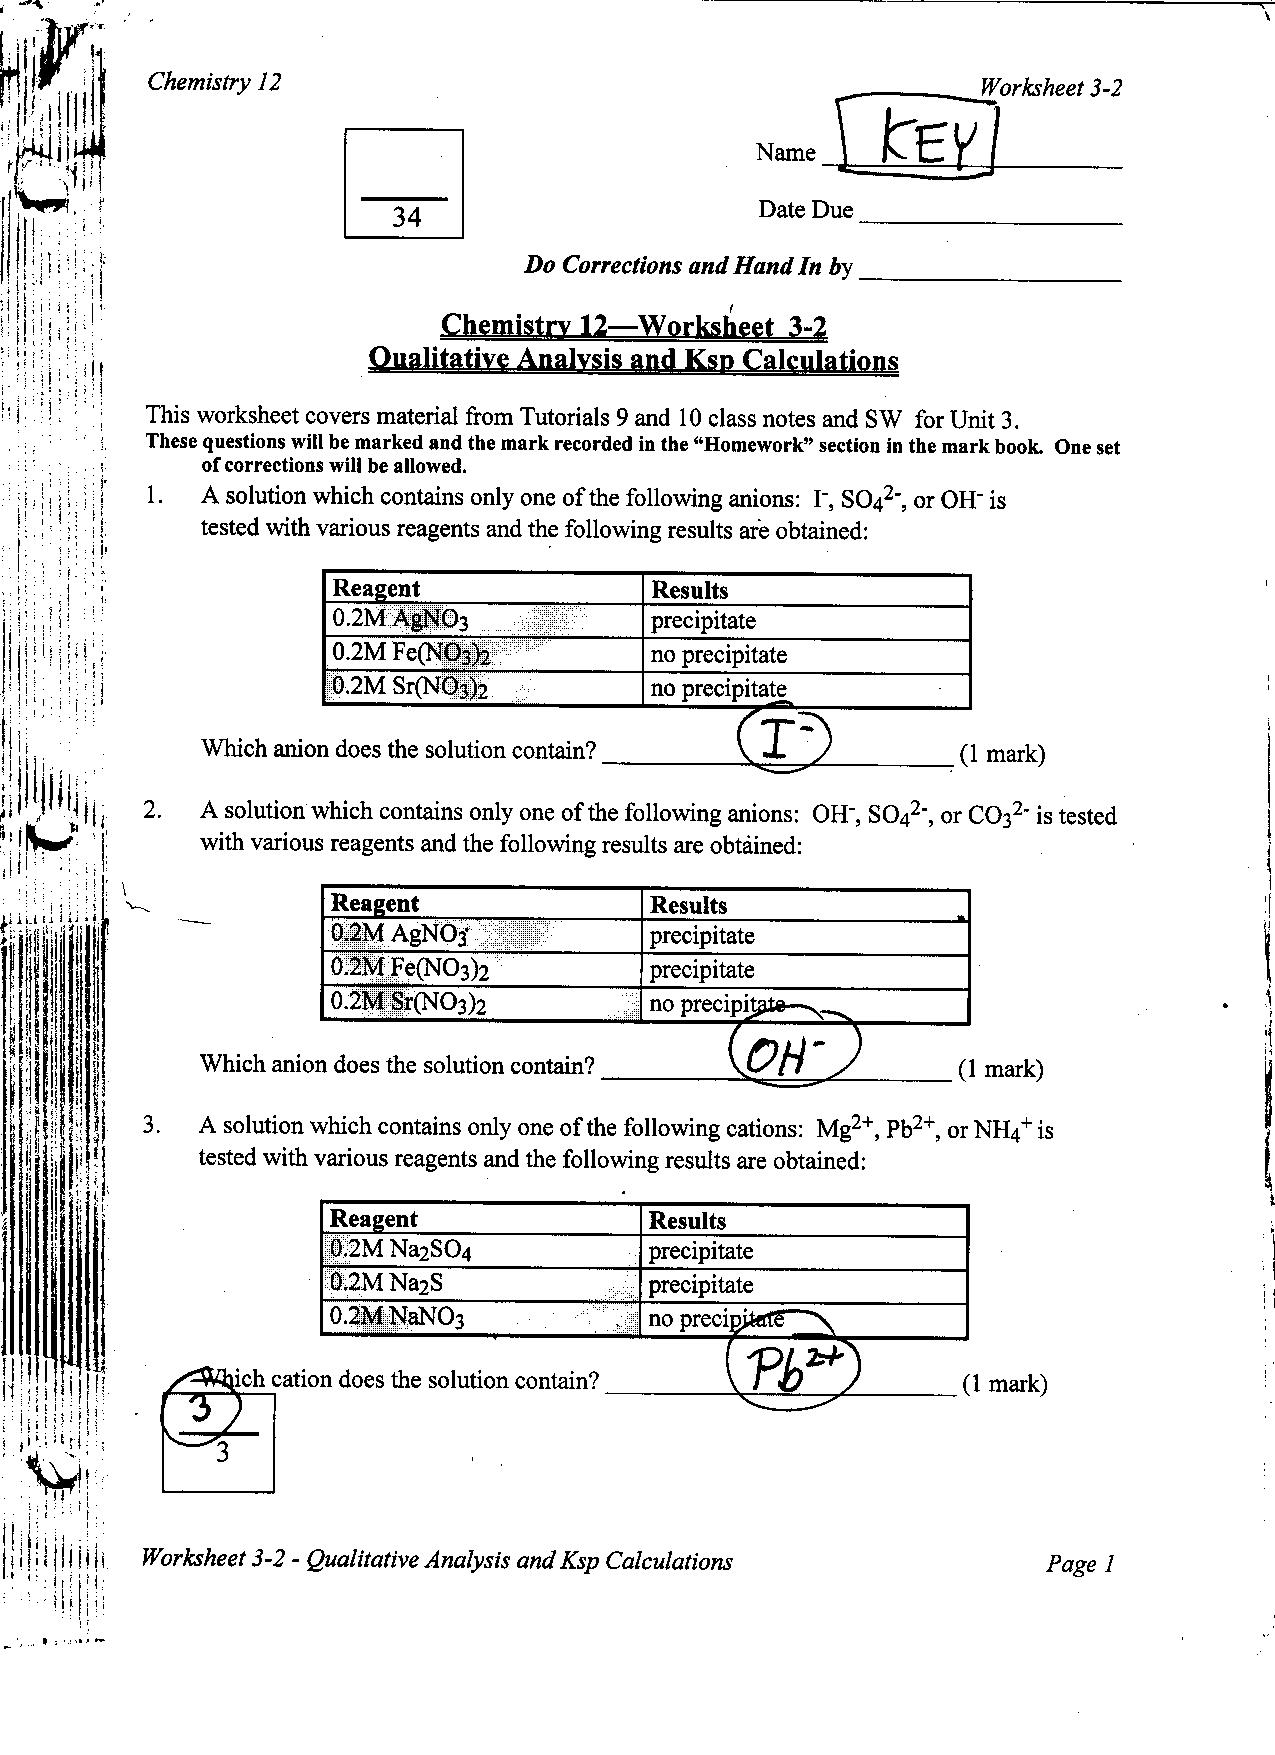 26 Substances Mixtures And Solubility Worksheet Answers